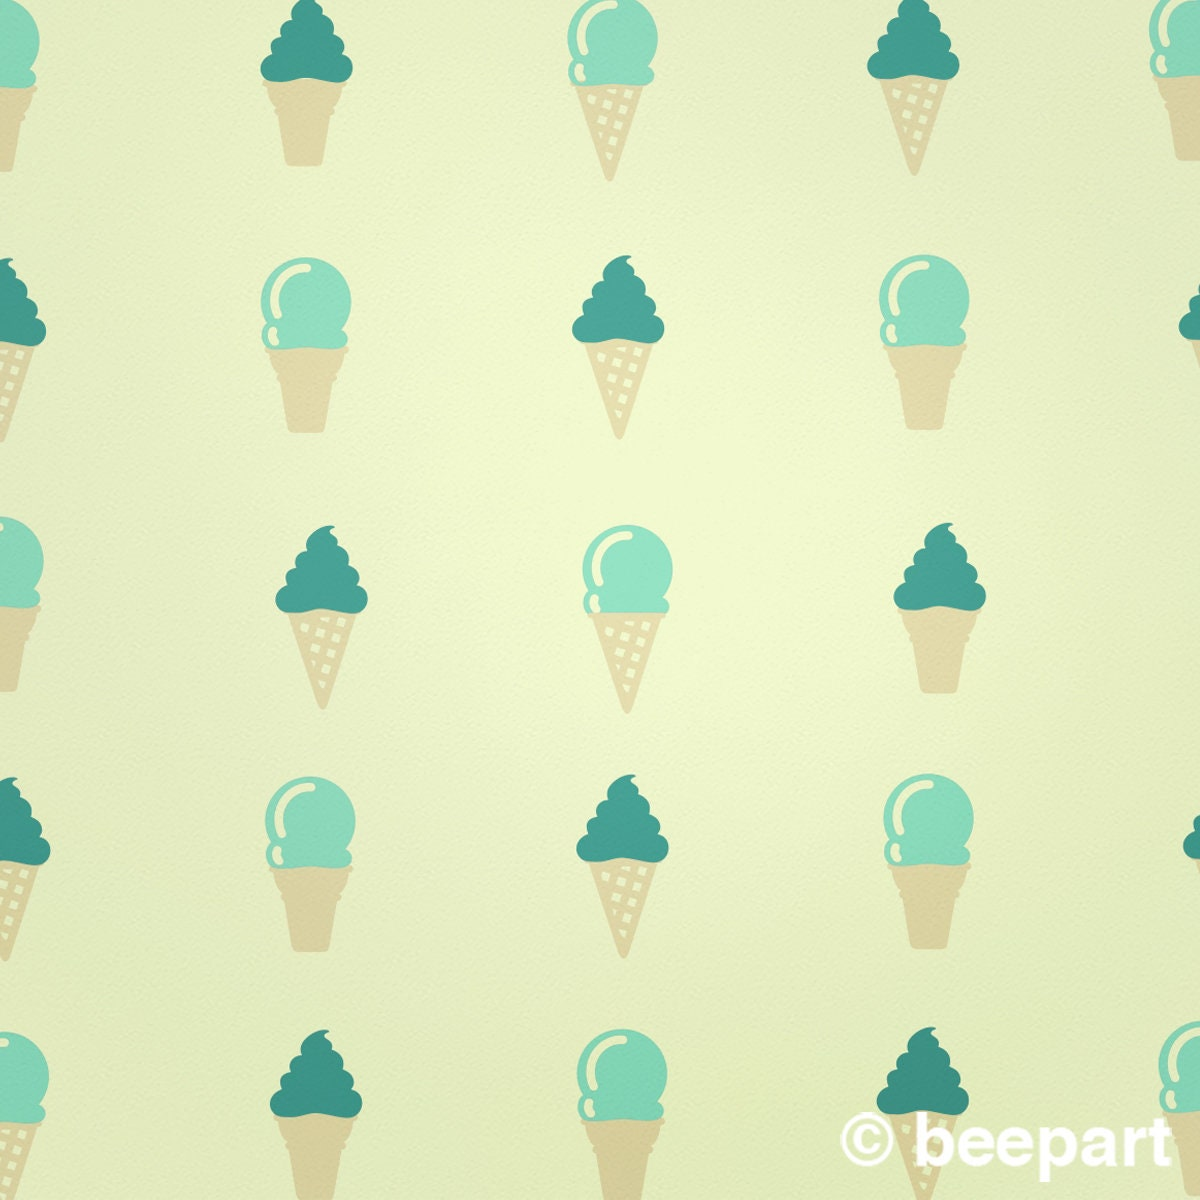 ice cream cone wall decal set, ice cream stickers, ice cream decor ...